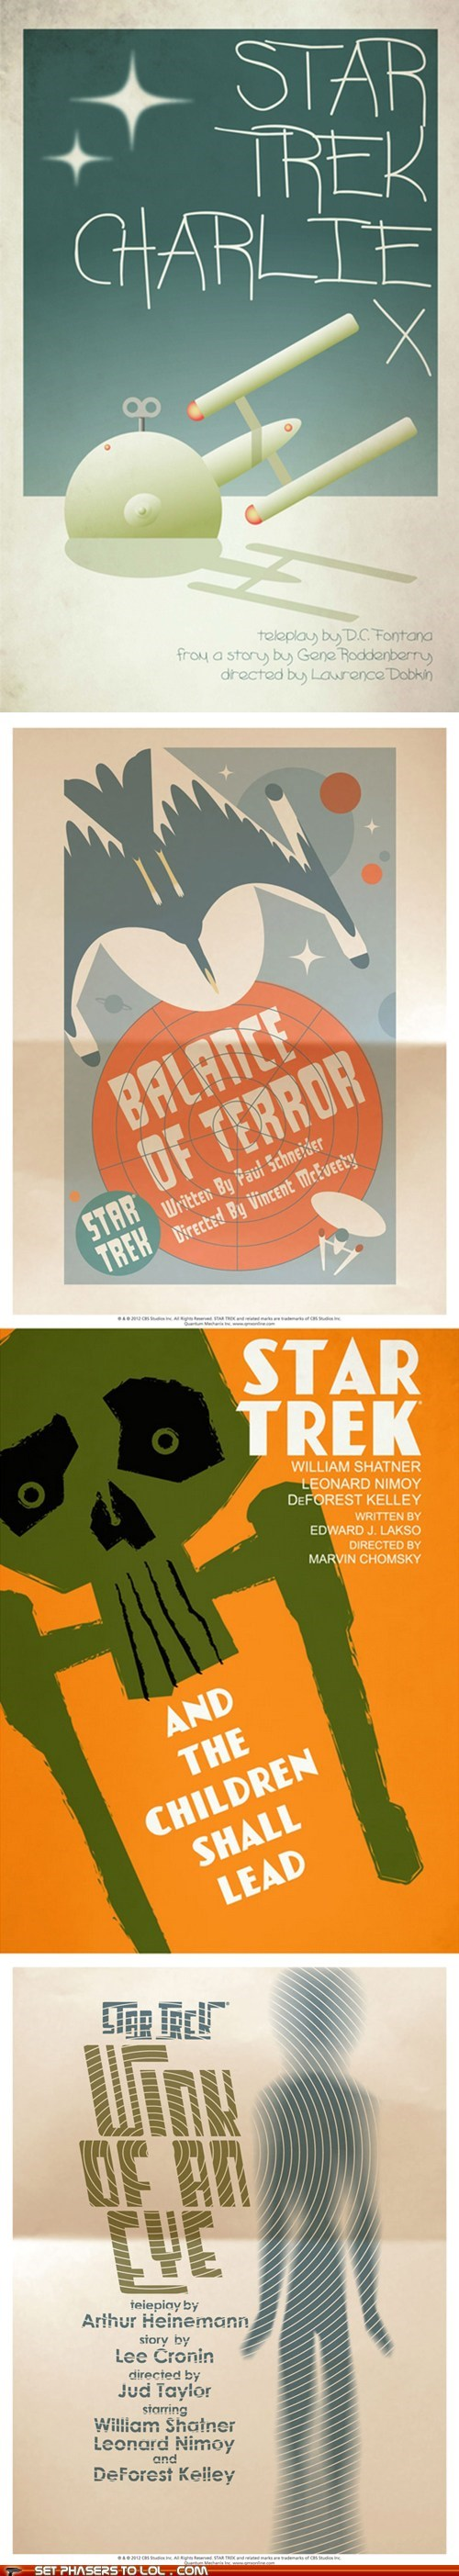 art,charlie x,DeForest Kelley,episodes,Leonard Nimoy,posters,retro,Star Trek,William Shatner